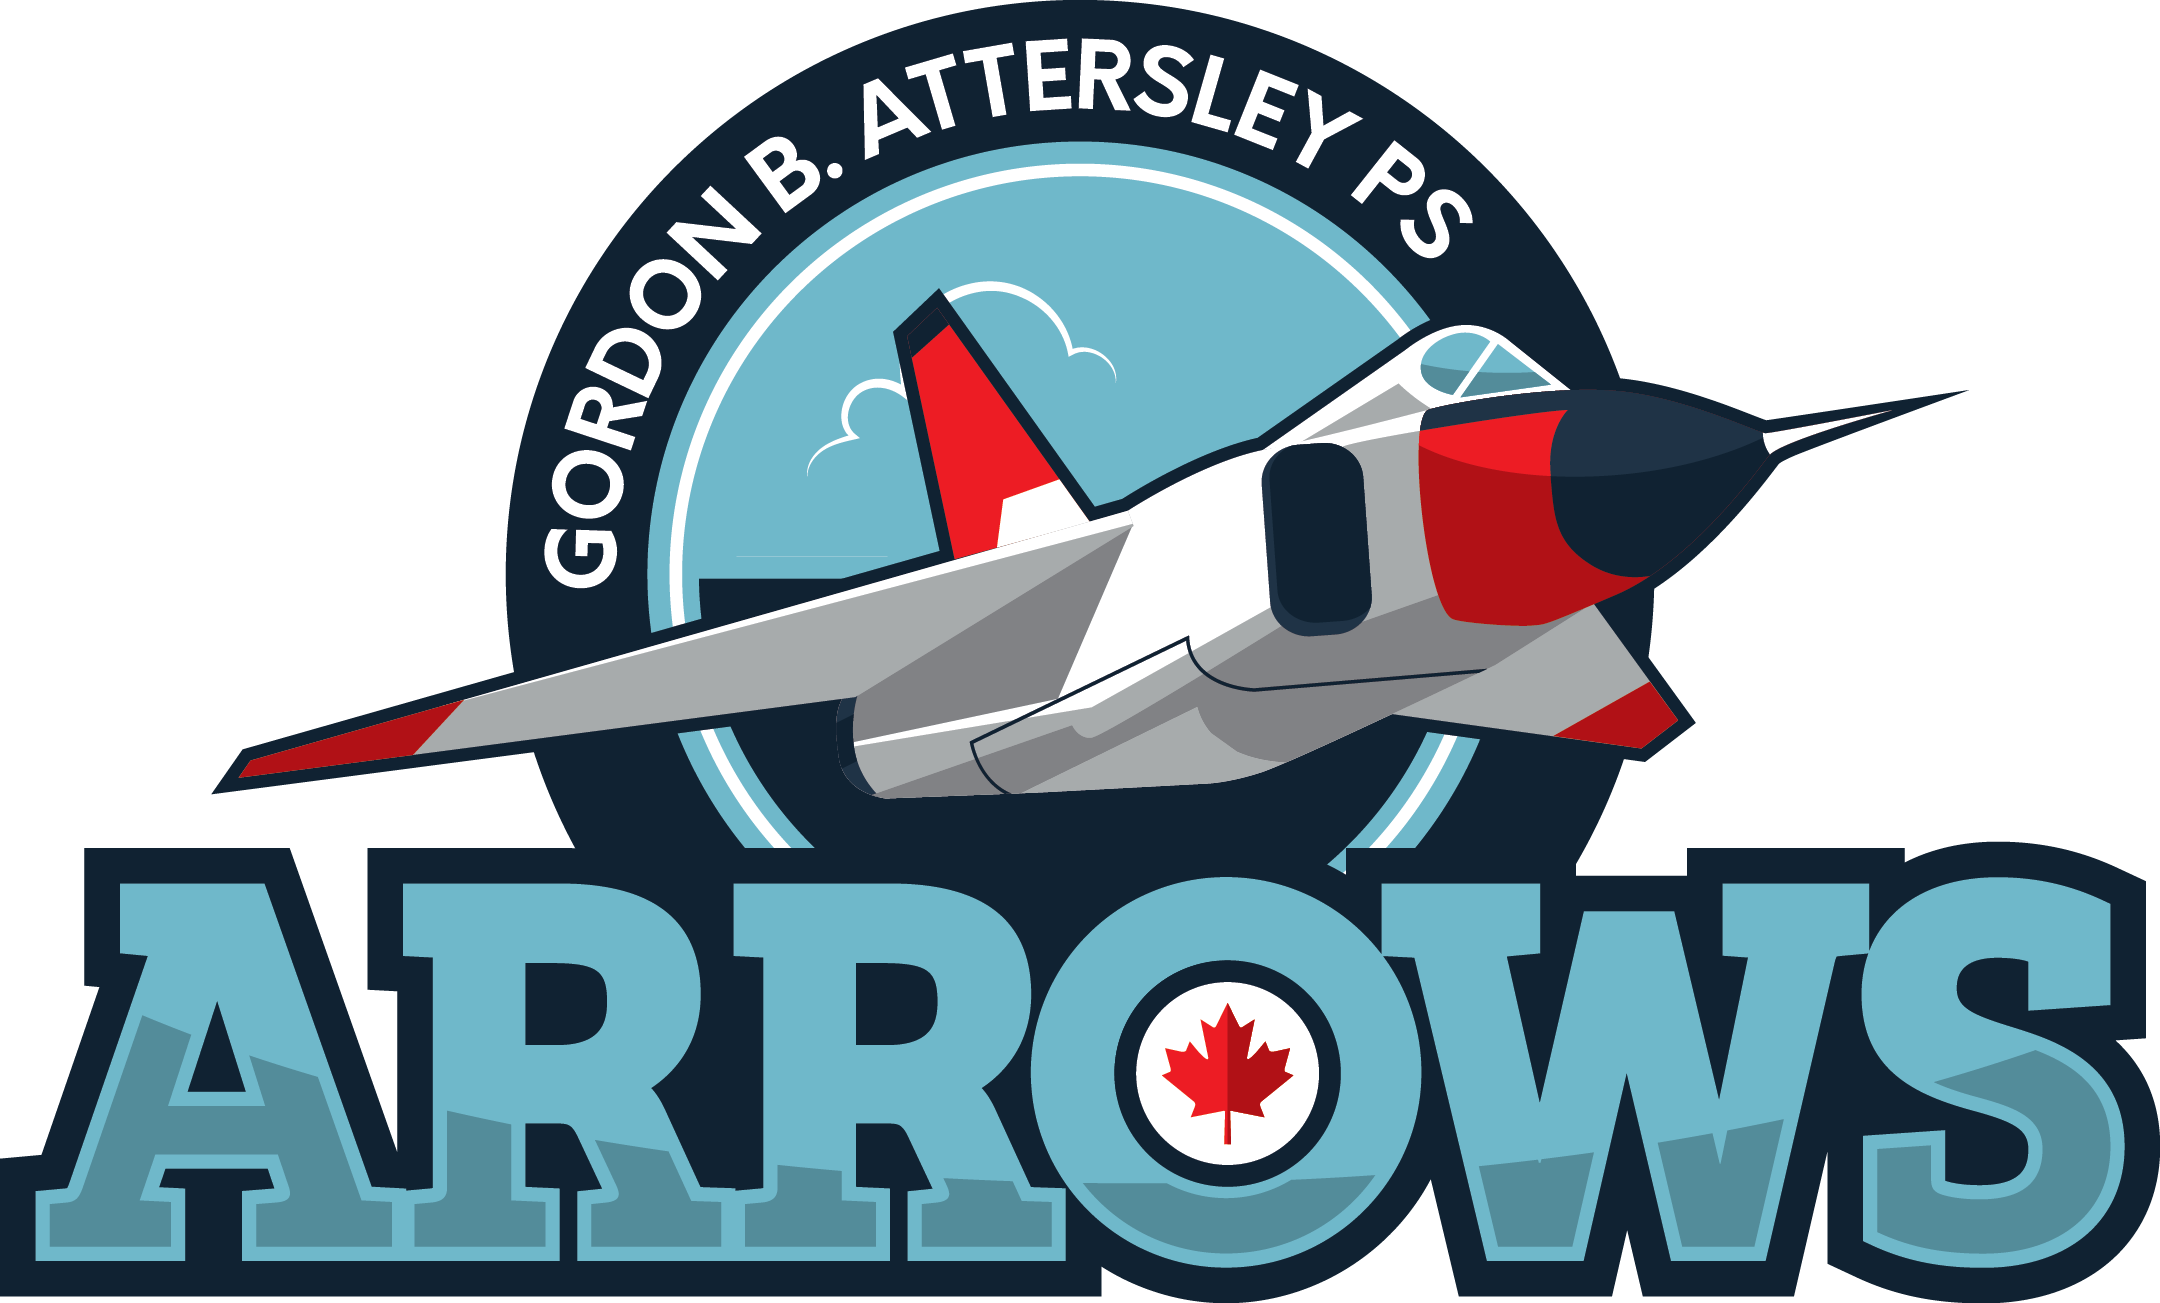 Gordon B. Attersley Public School logo